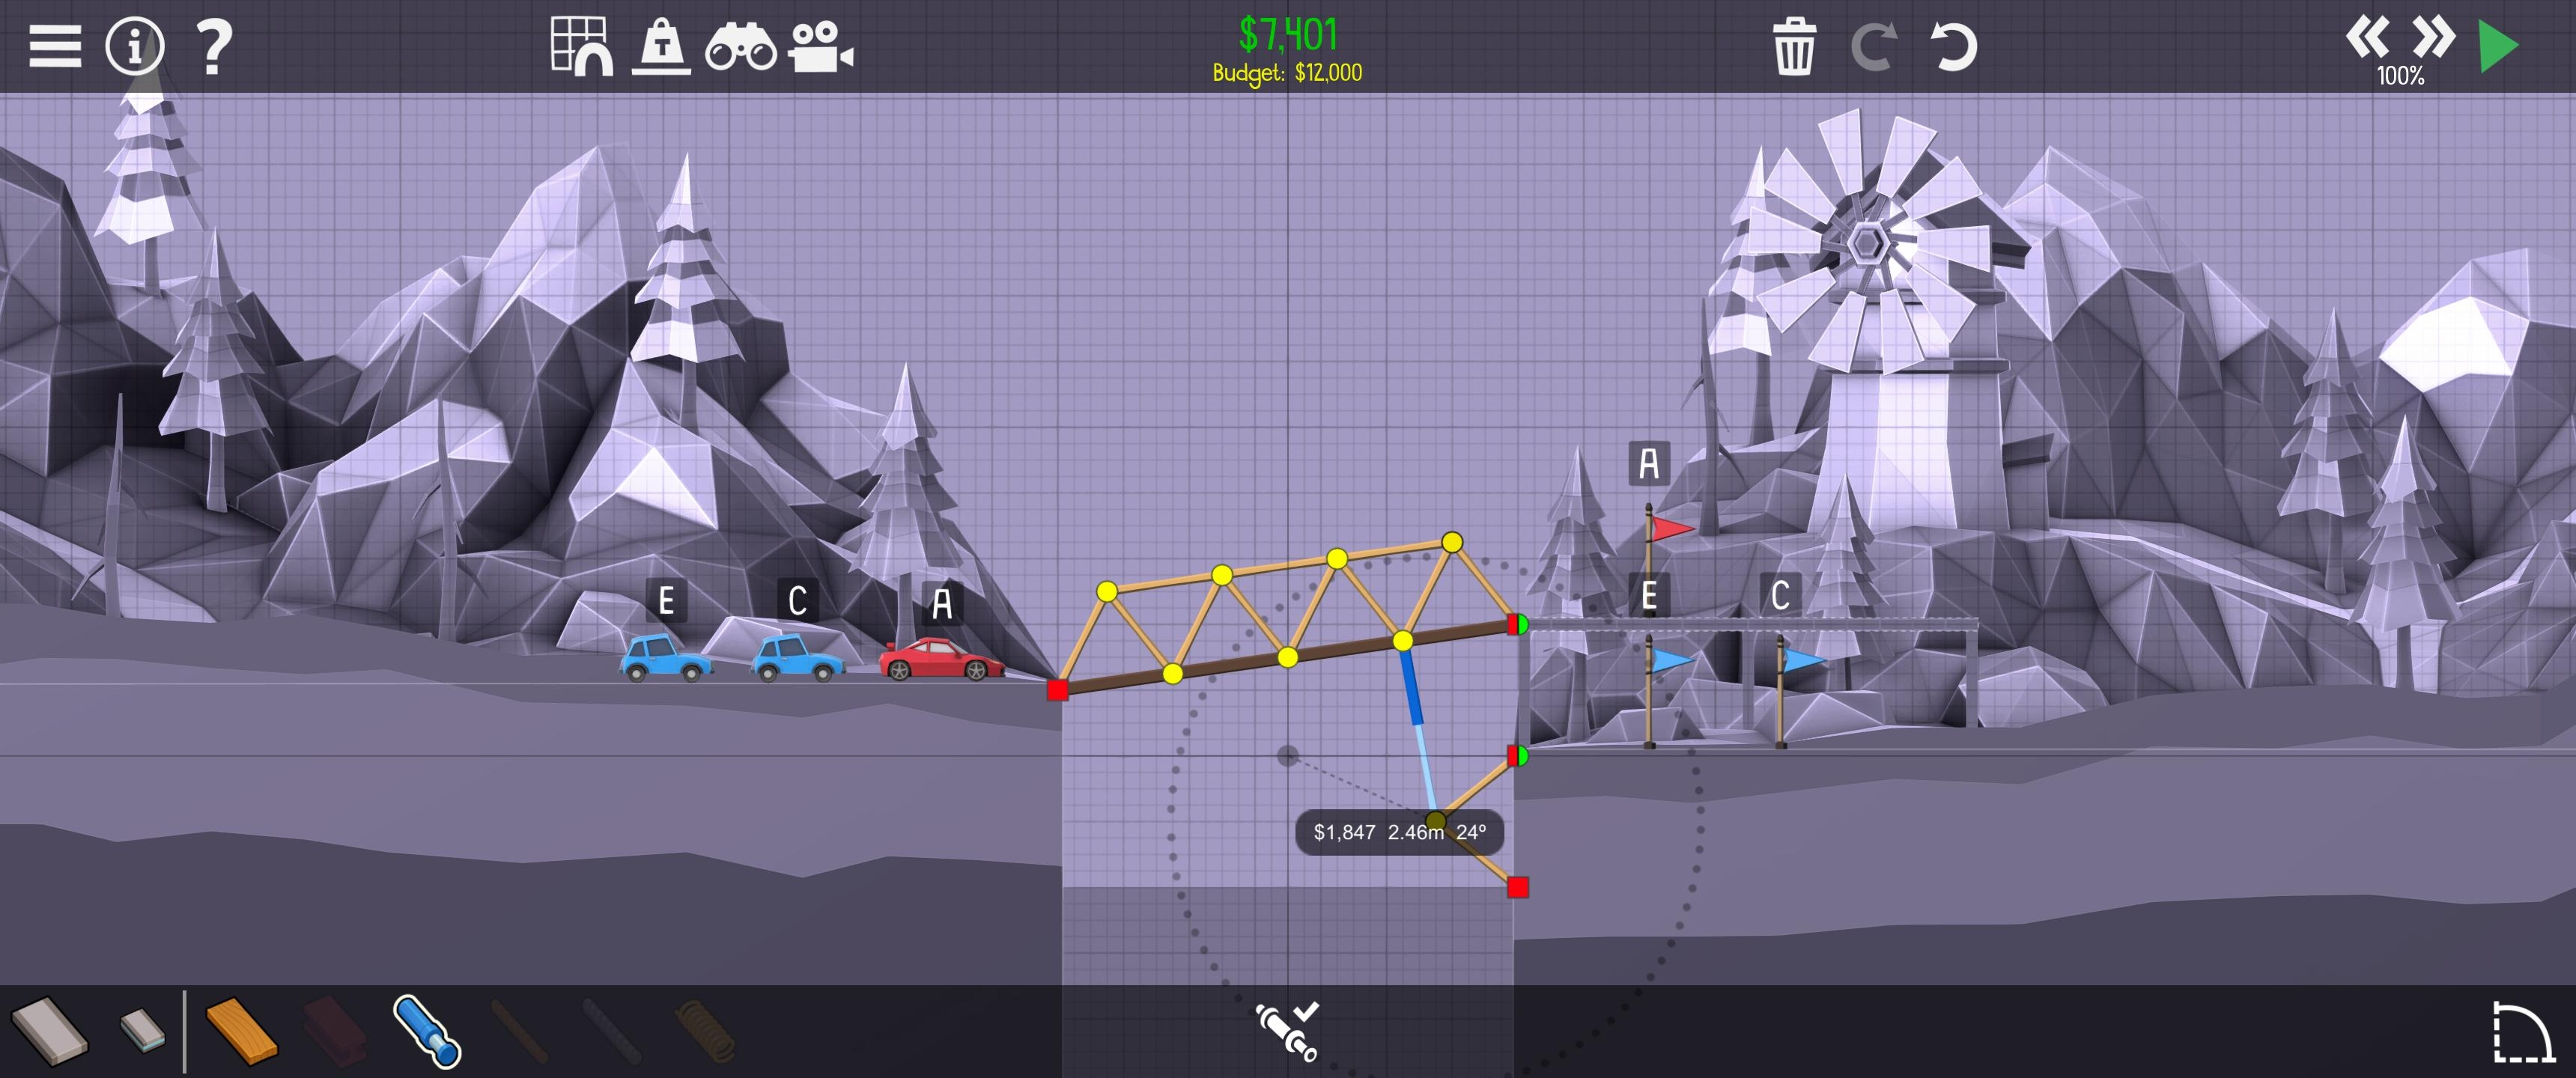 Screenshot of the build interface in Poly Bridge 2.